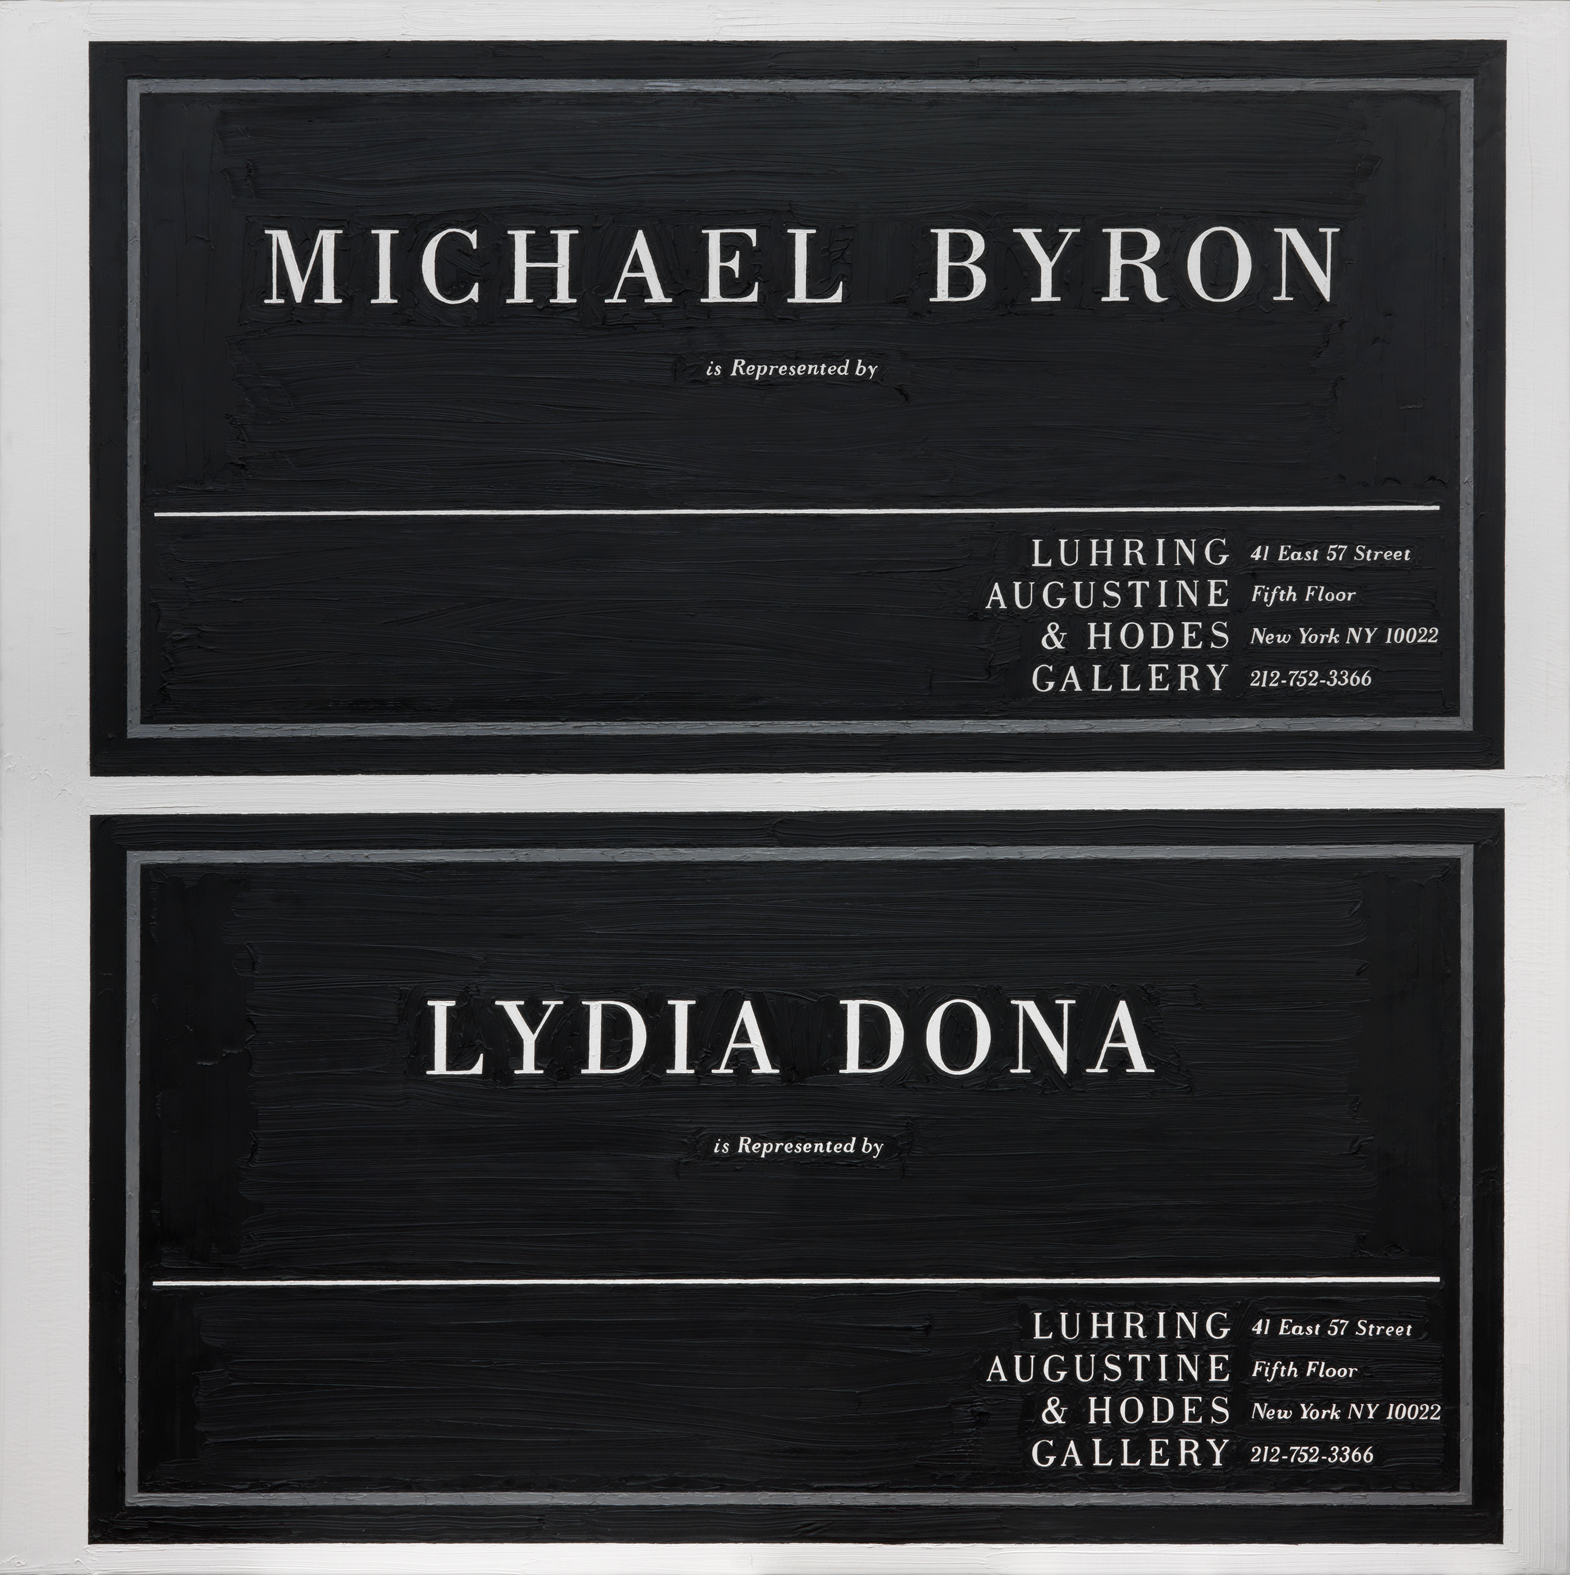 Michael Byron at Luhring, Augustine & Hodes